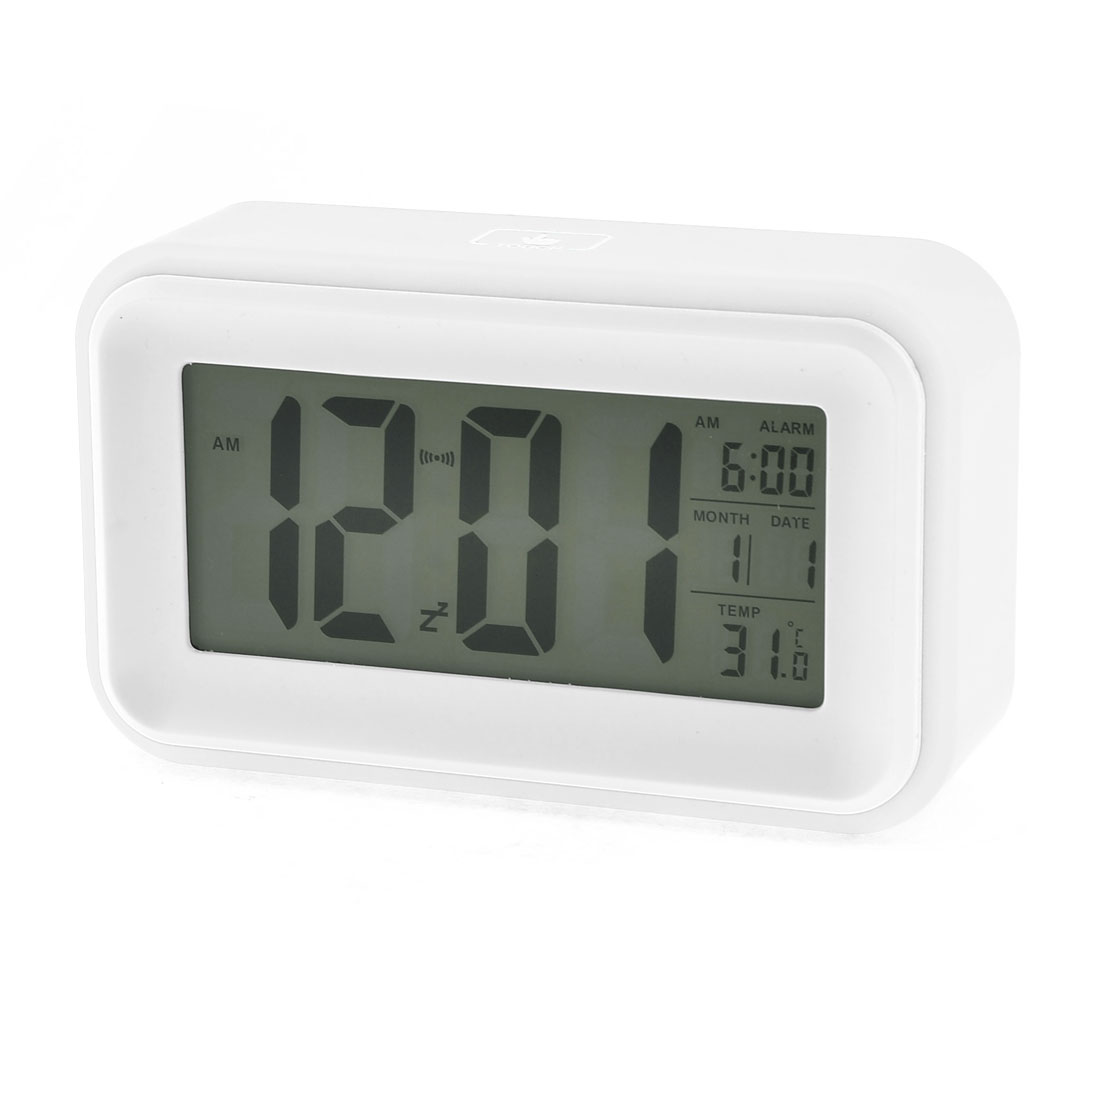 Light Control Device Digital LCD Calendar Alarm Voice Sensor Clock